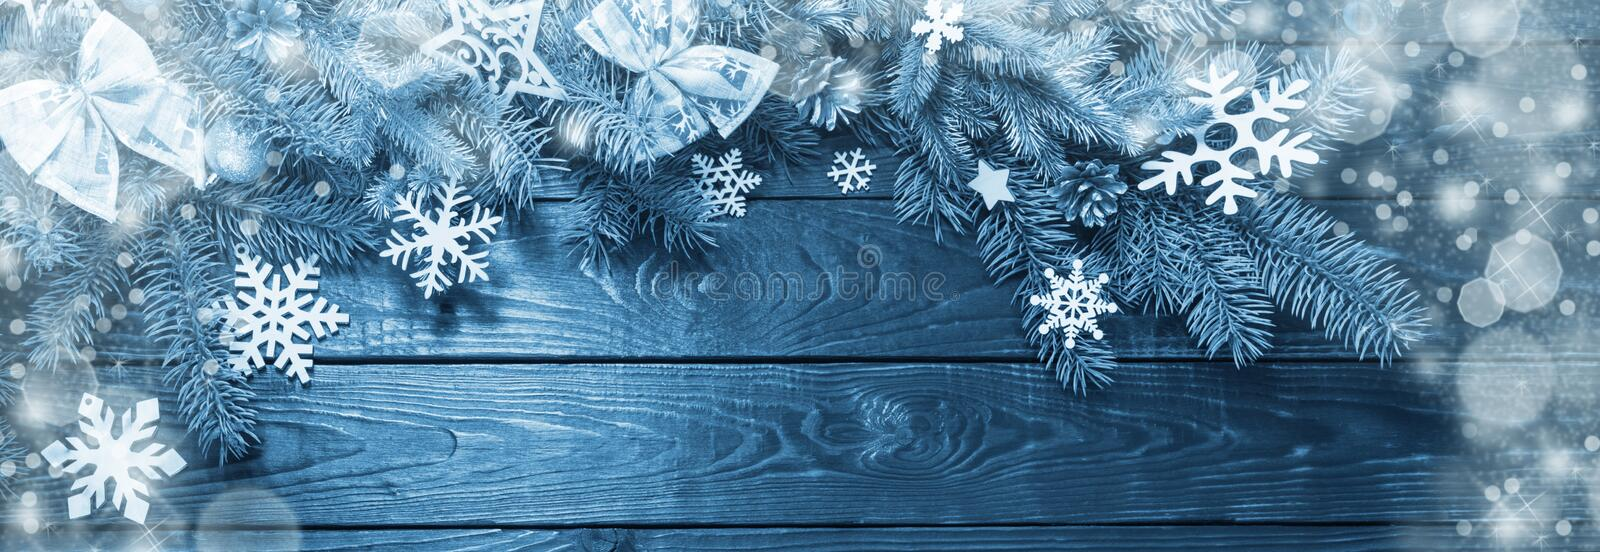 Fir branches with Christmas decor on old dark wooden background royalty free stock image